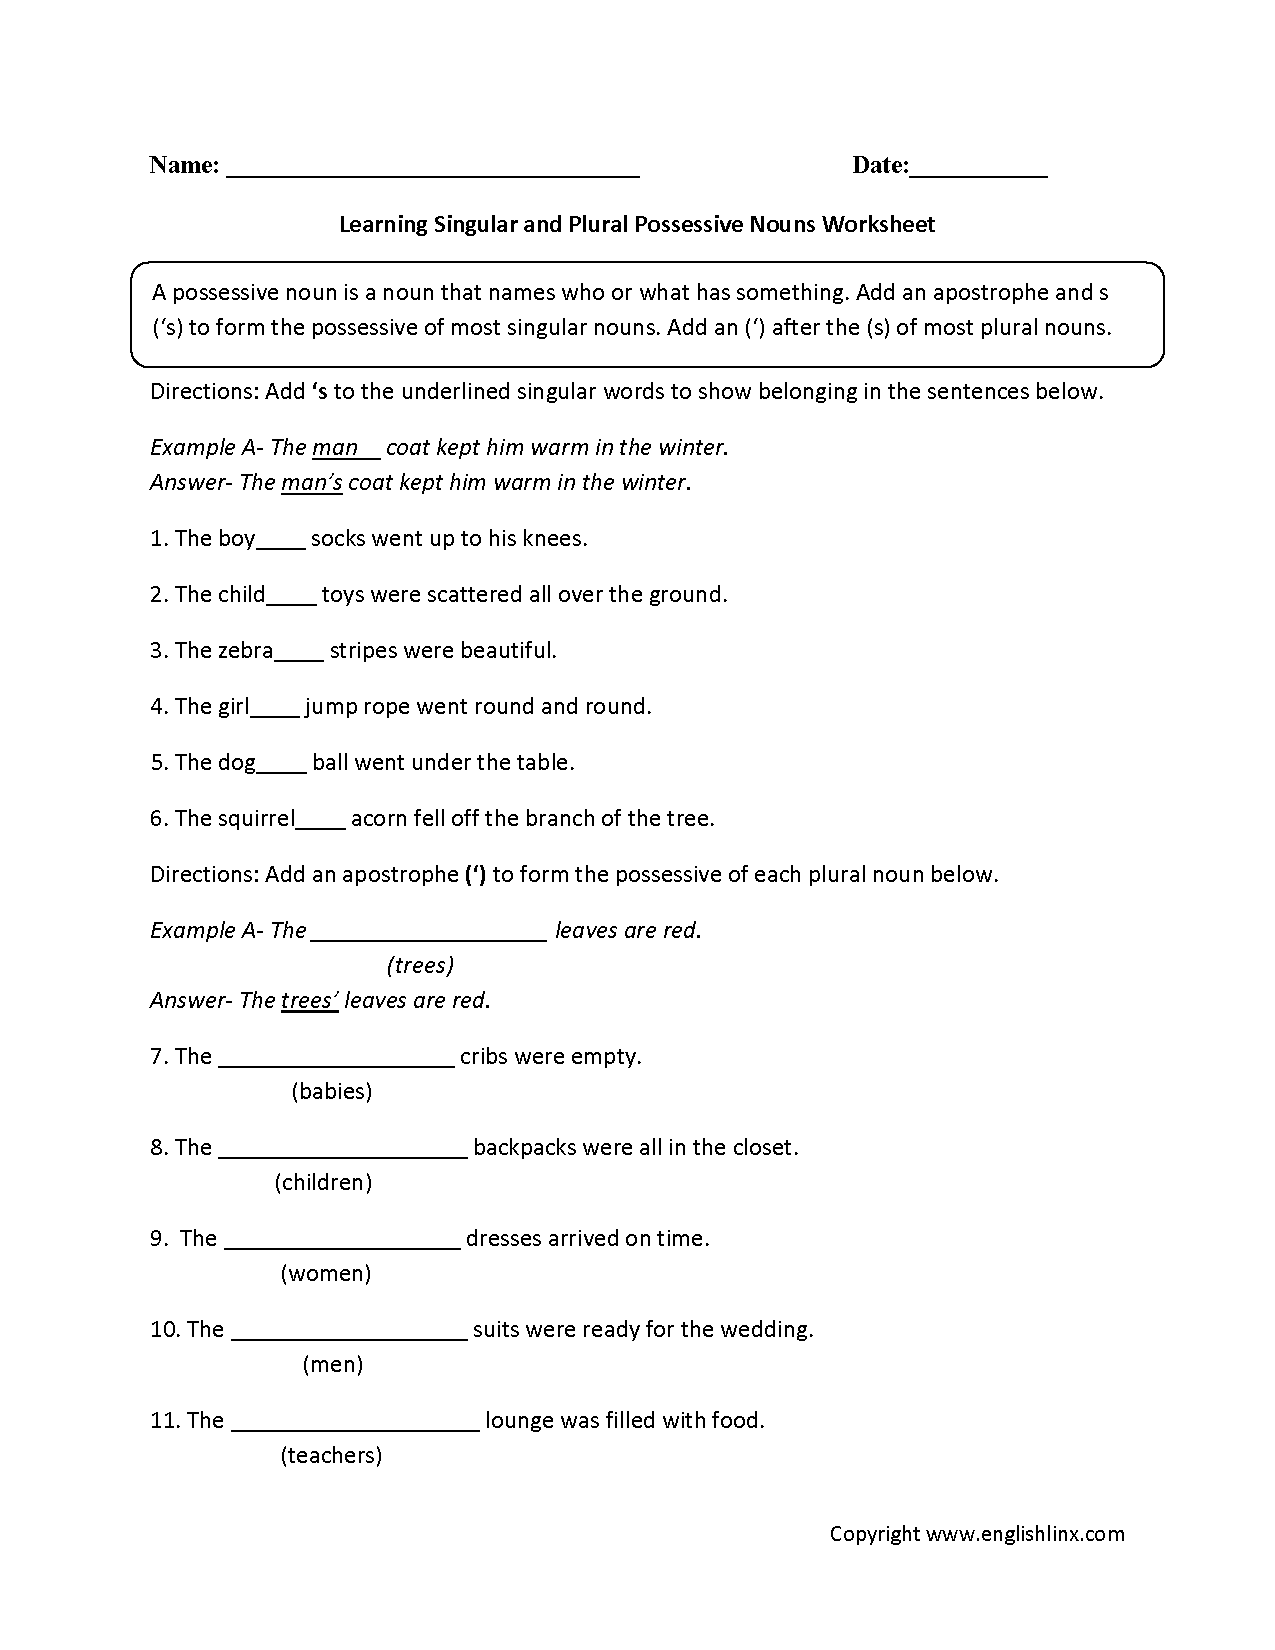 Worksheets Grammar Worksheets 1st Grade nouns worksheets possessive grades 9 12 worksheets